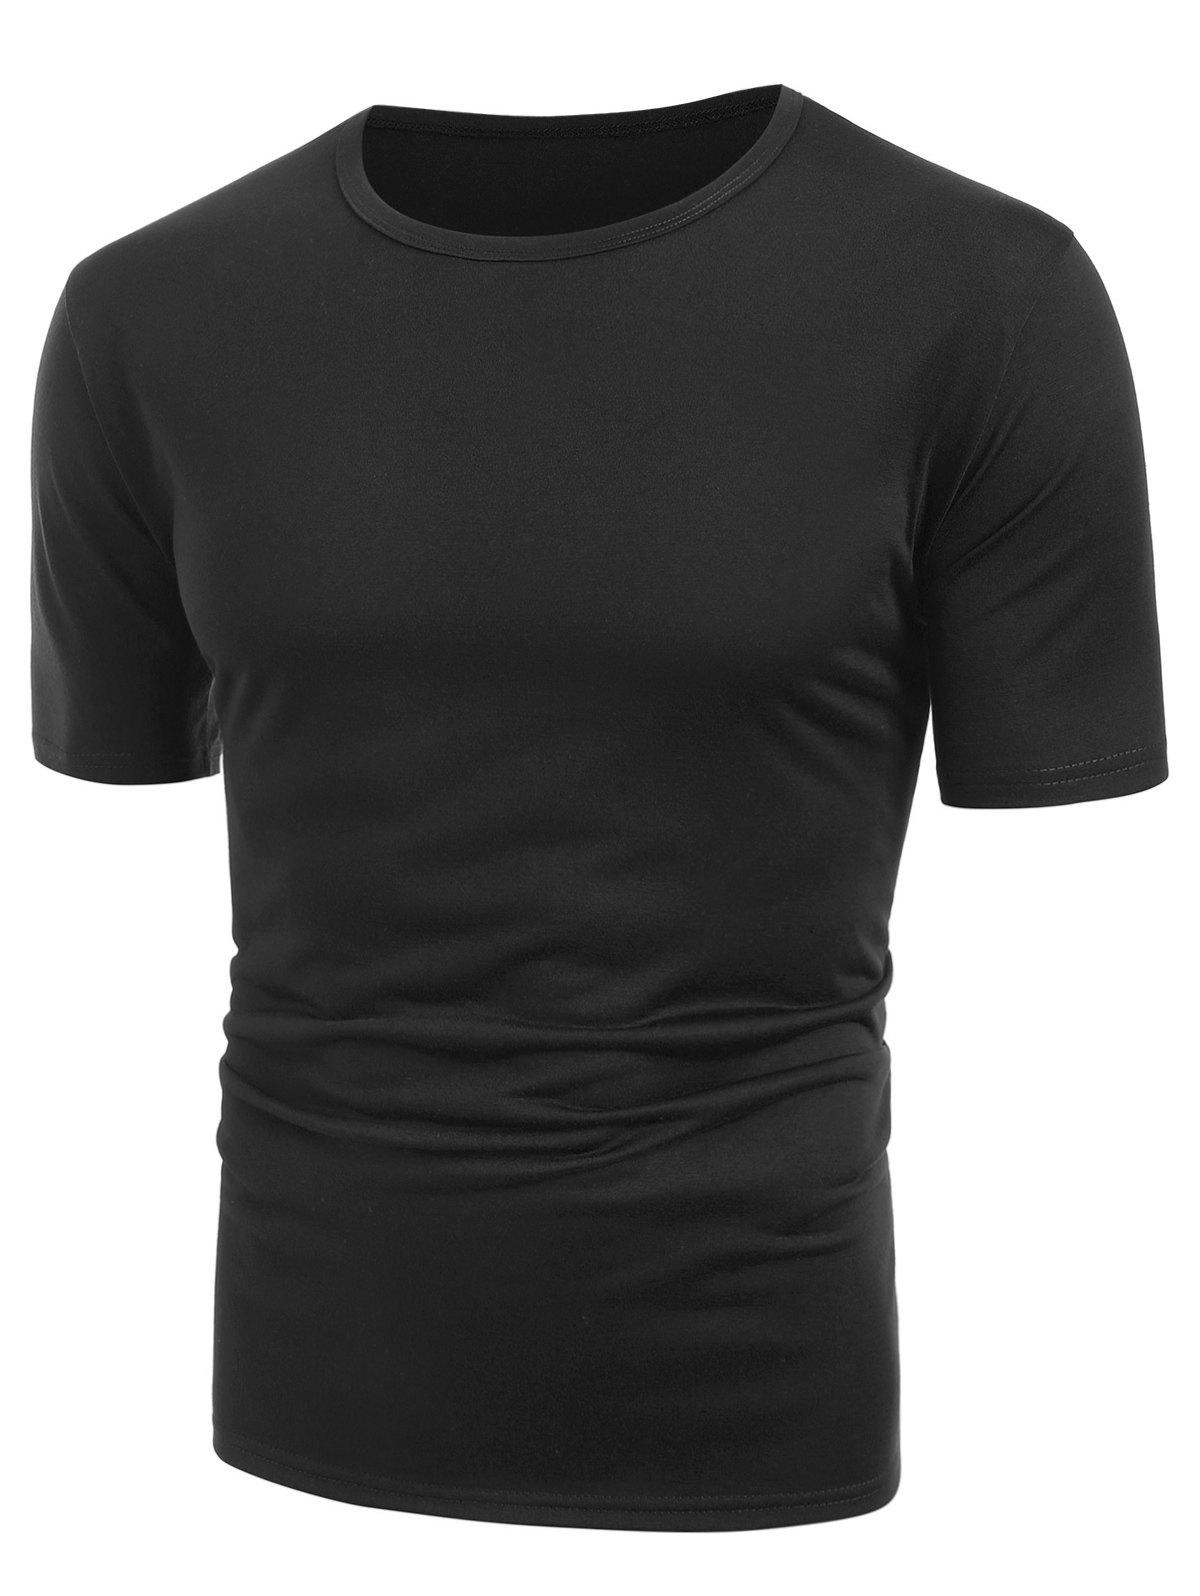 Store Round Neck Solid Color T Shirt